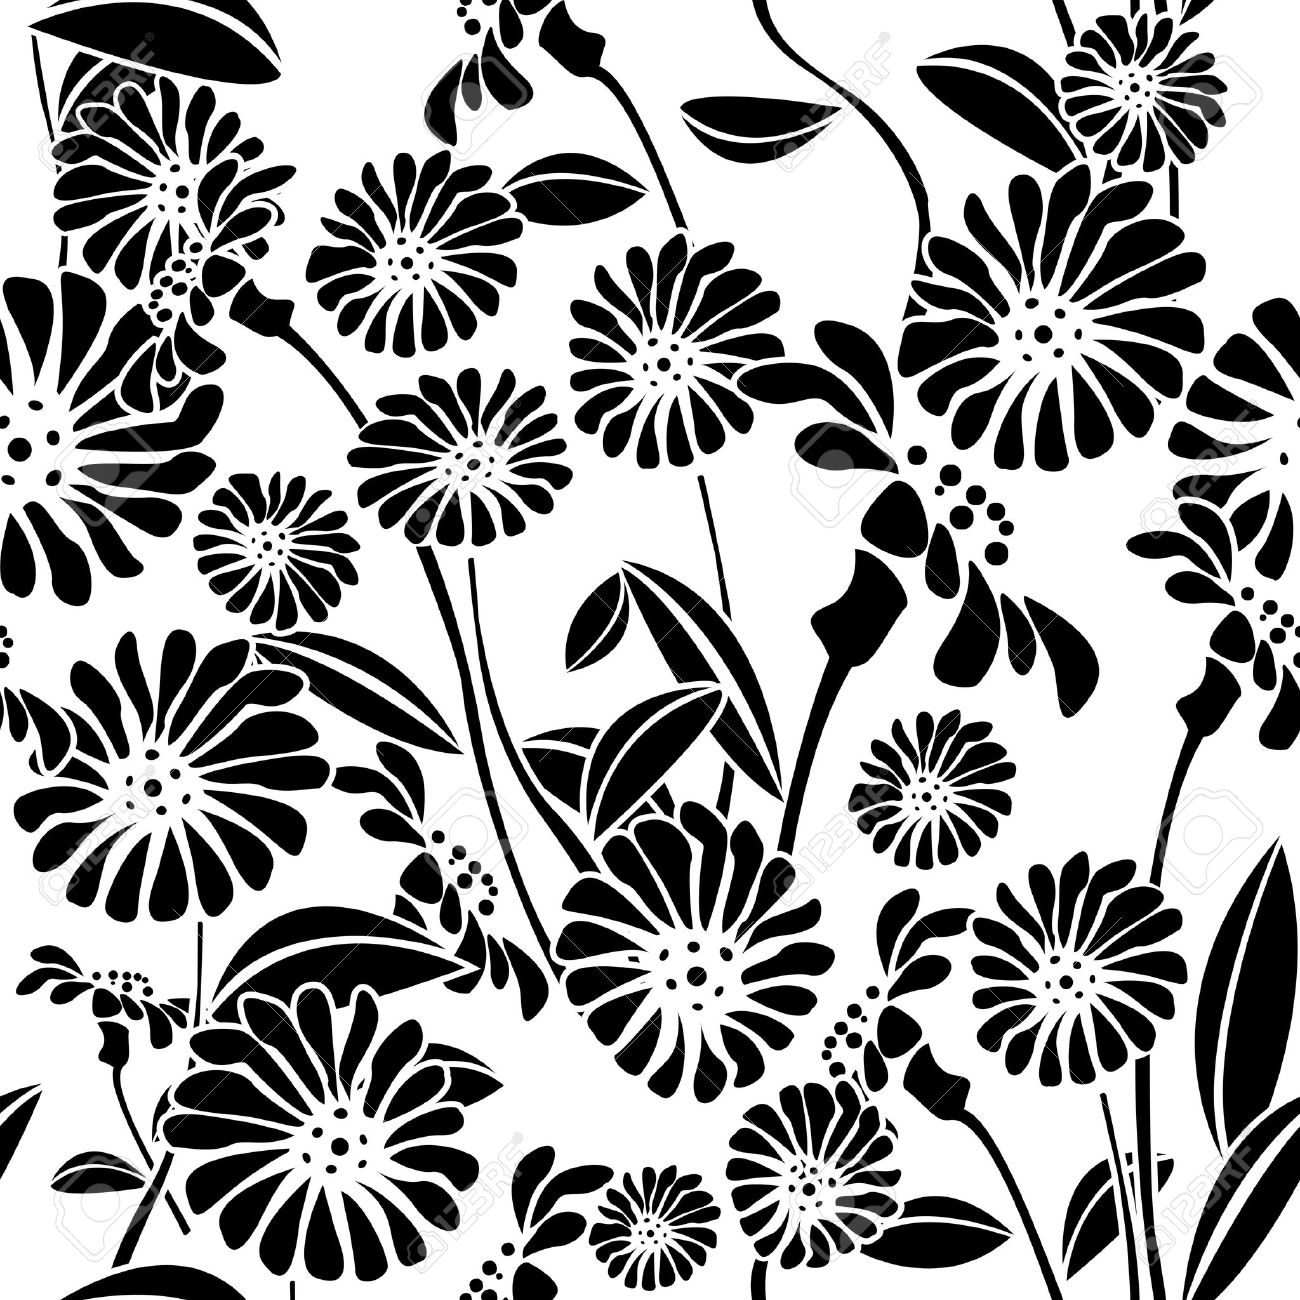 Decorative Floral Background Seamless Pattern In Black And White